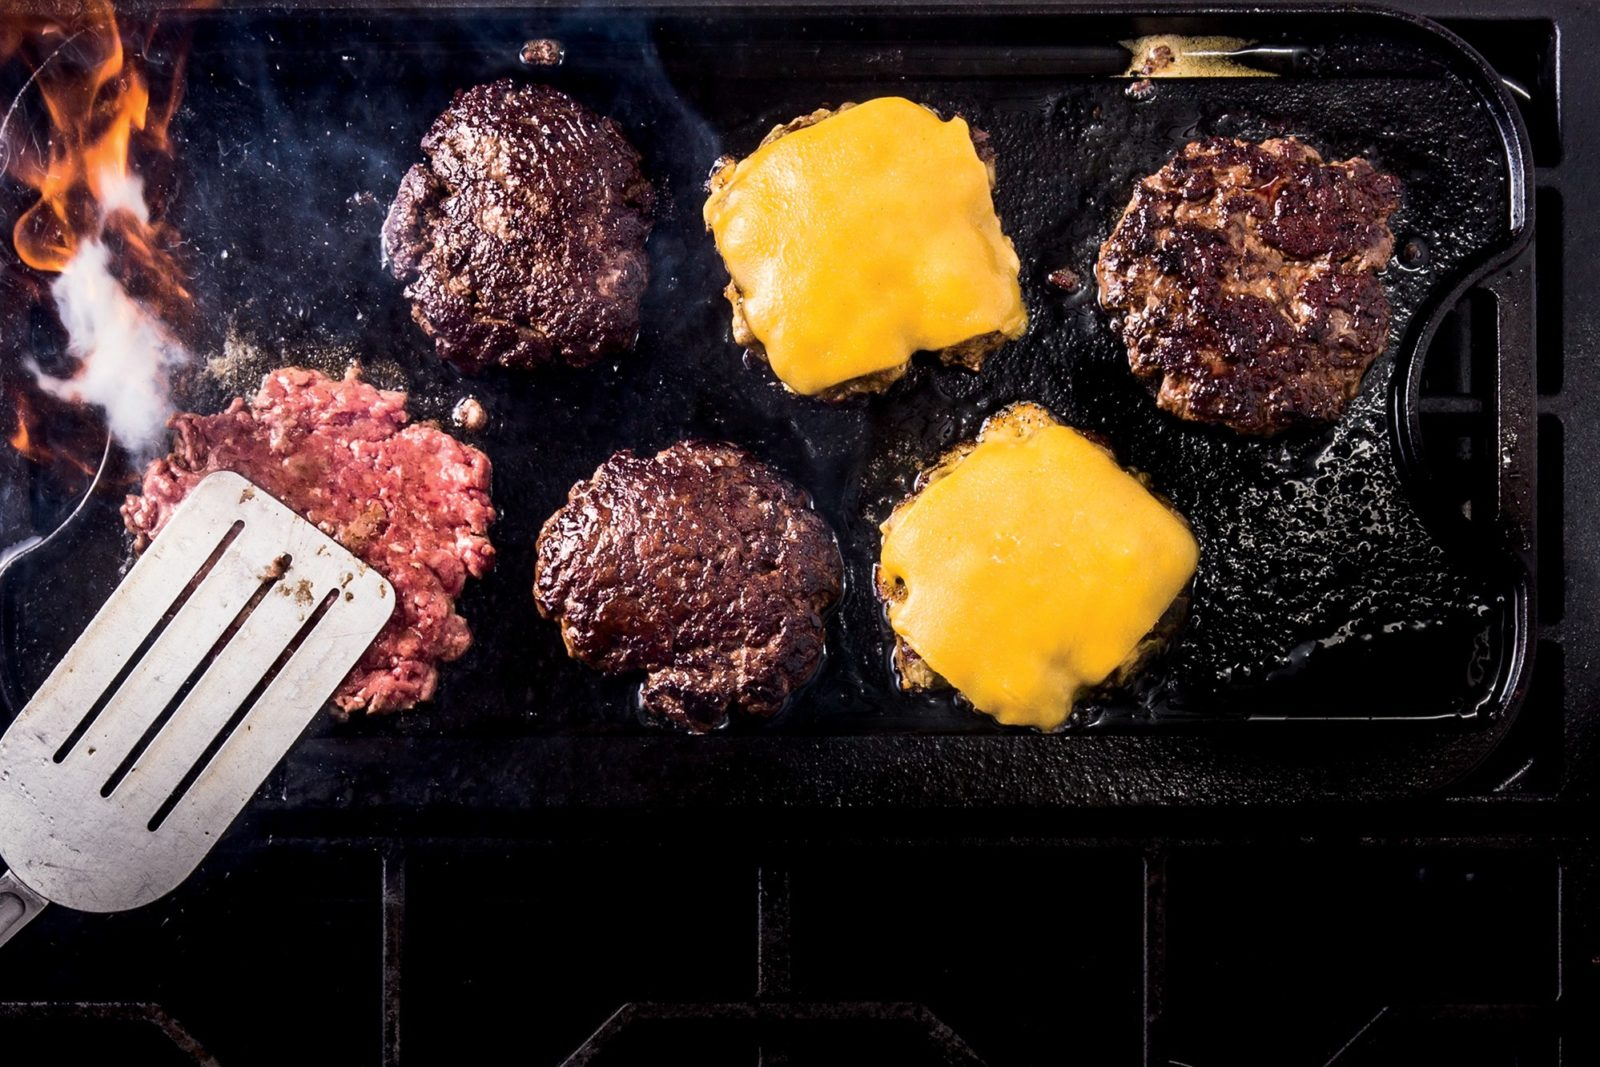 cooking the steak with bread and cheese